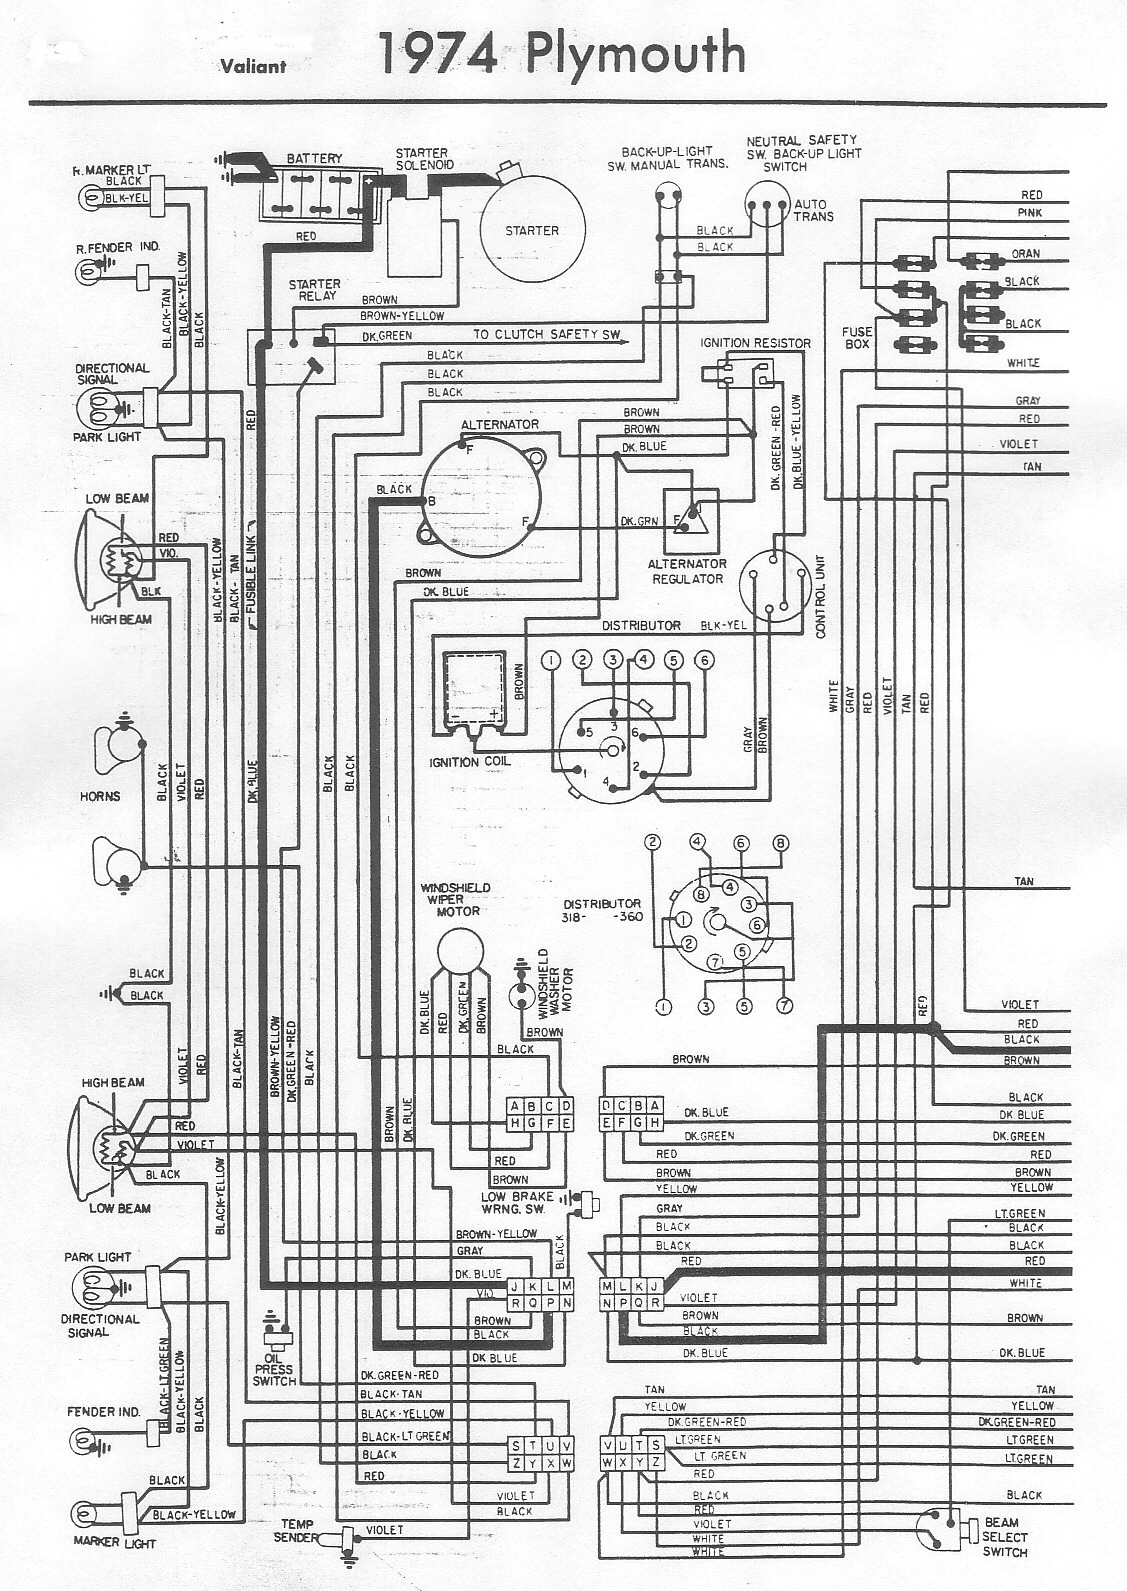 1970 Cuda Wiring Diagram Horn Library Corvette Ignition Switch For 1968 Ford F100 Pick Up Auto Electrical Dodge Valiant 68